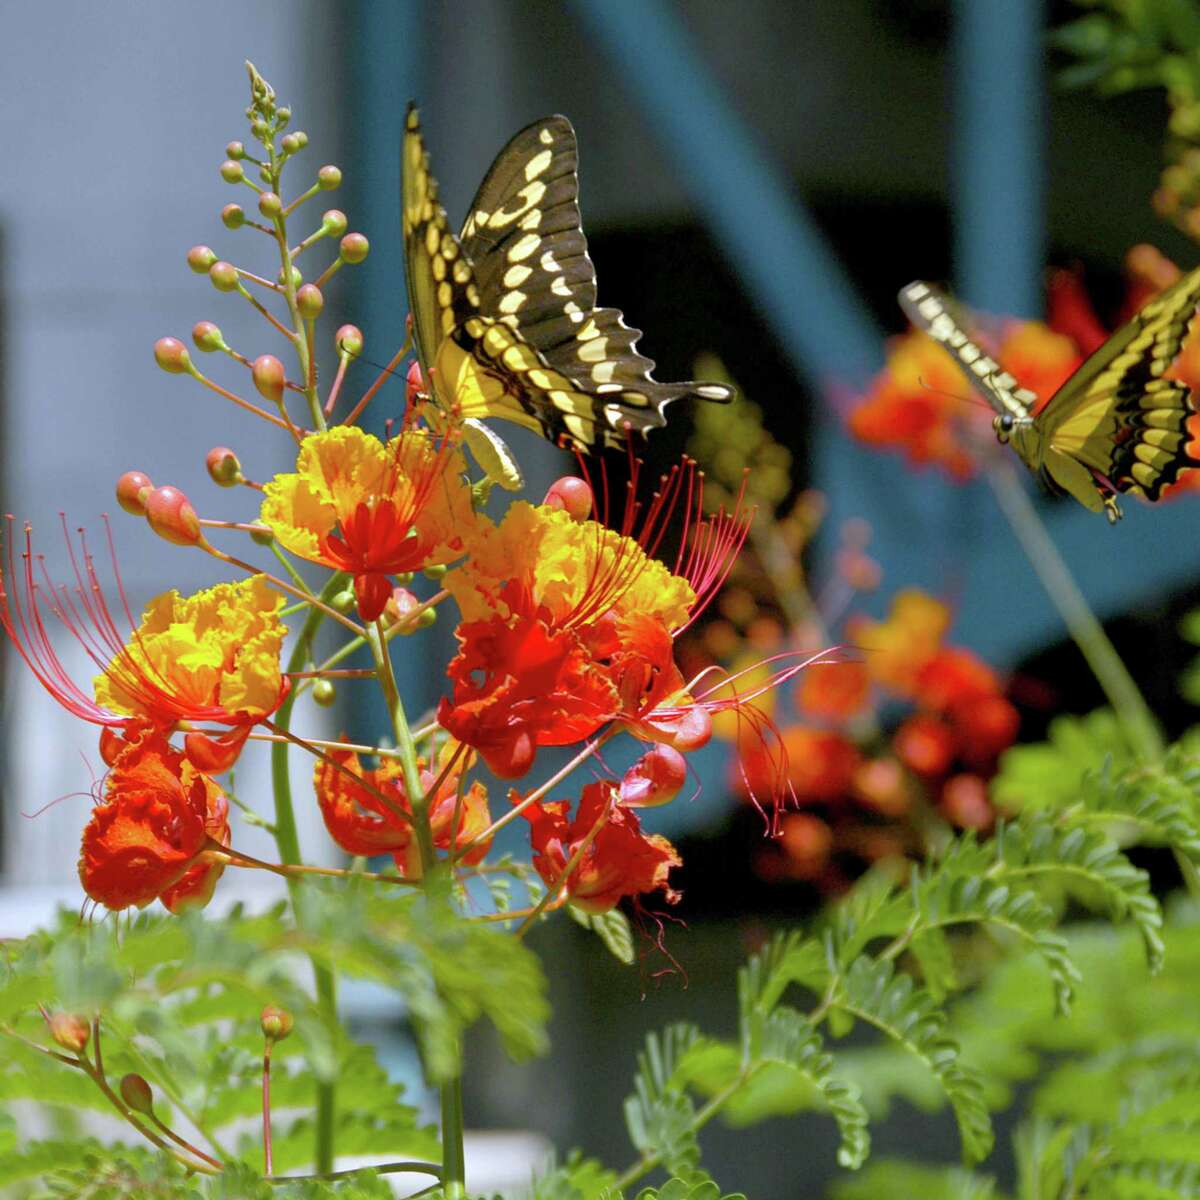 If your Pride of Barbados was damaged in the freeze, don't give up on it yet. It's a late bloomer, so it still has time for new stems to re-emerge from the root system.